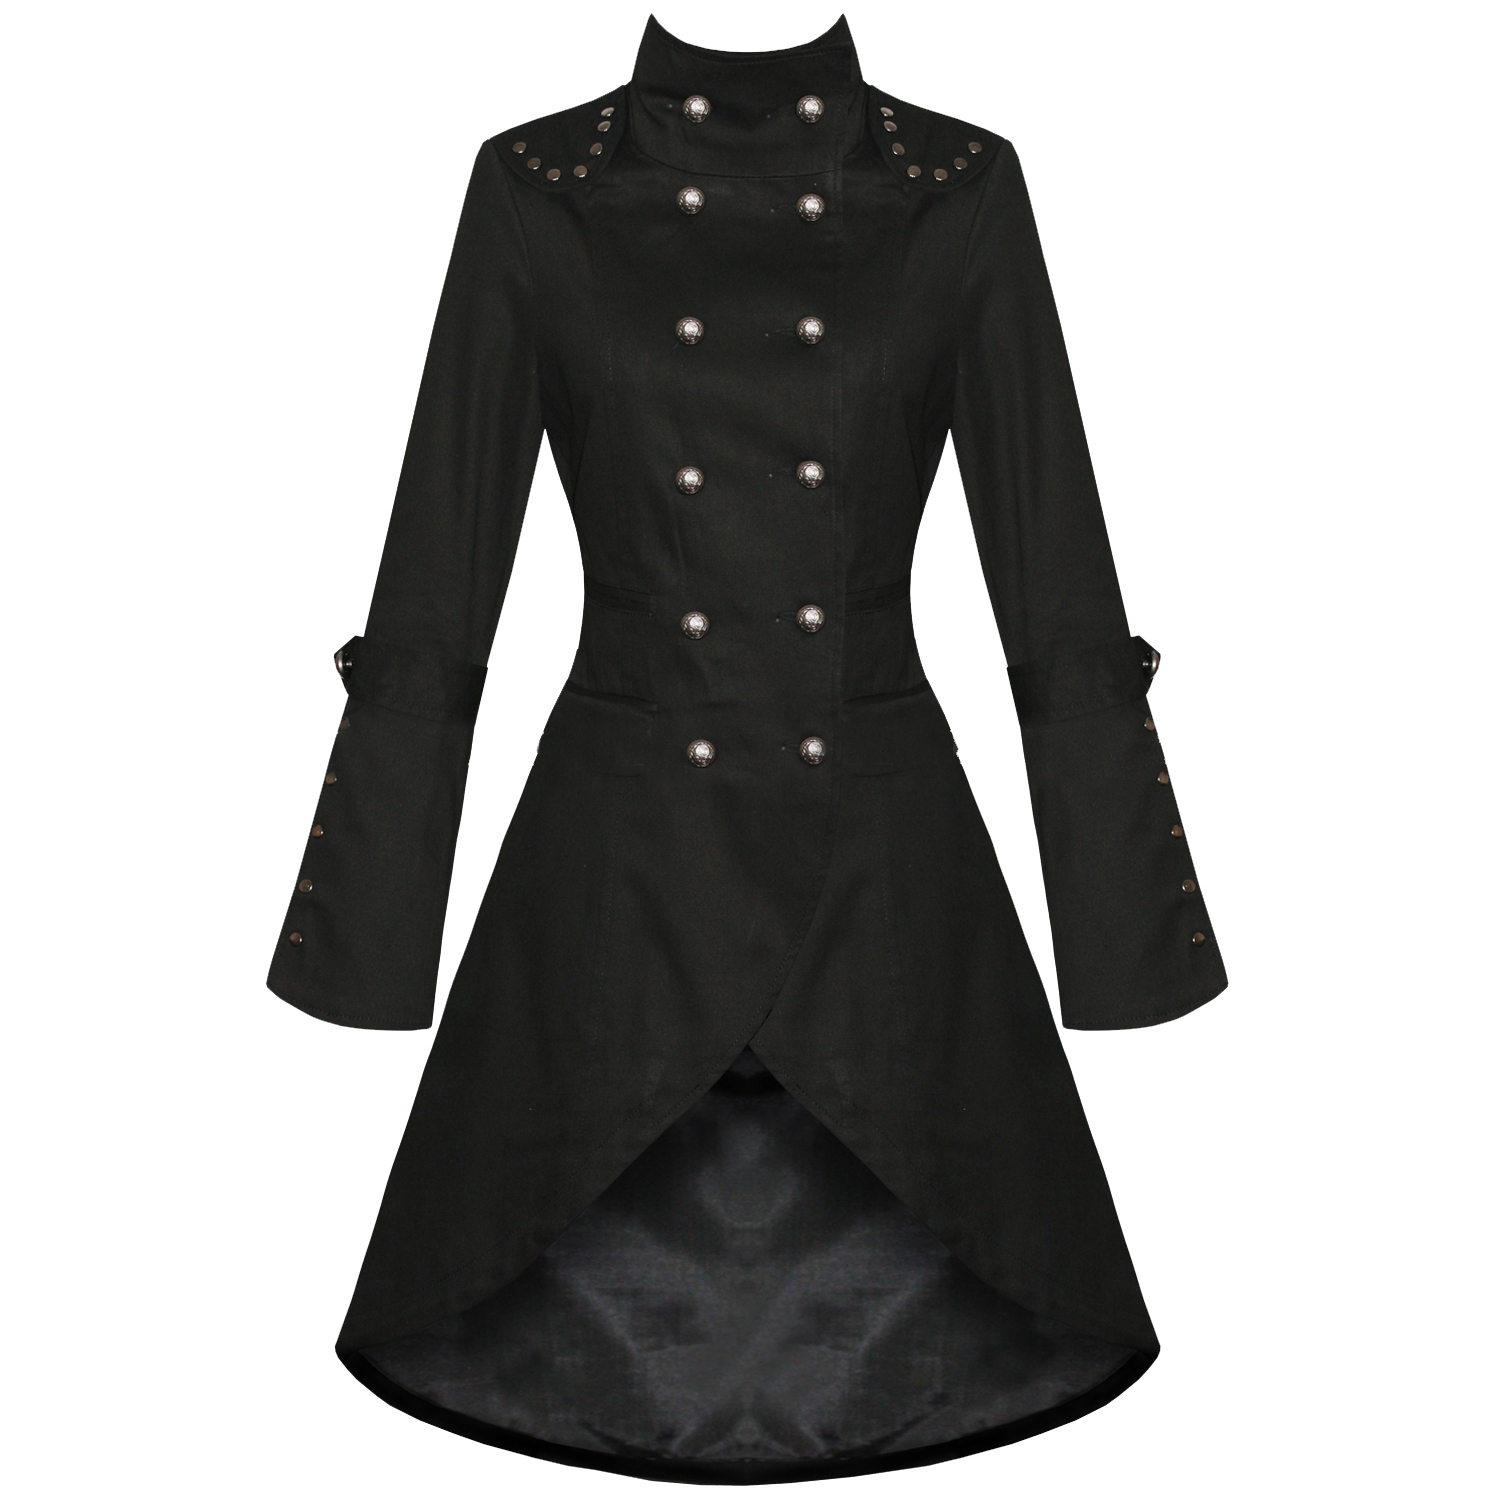 Details about WOMENS LADIES NEW BLACK GOTHIC STEAMPUNK MILITARY COTTON